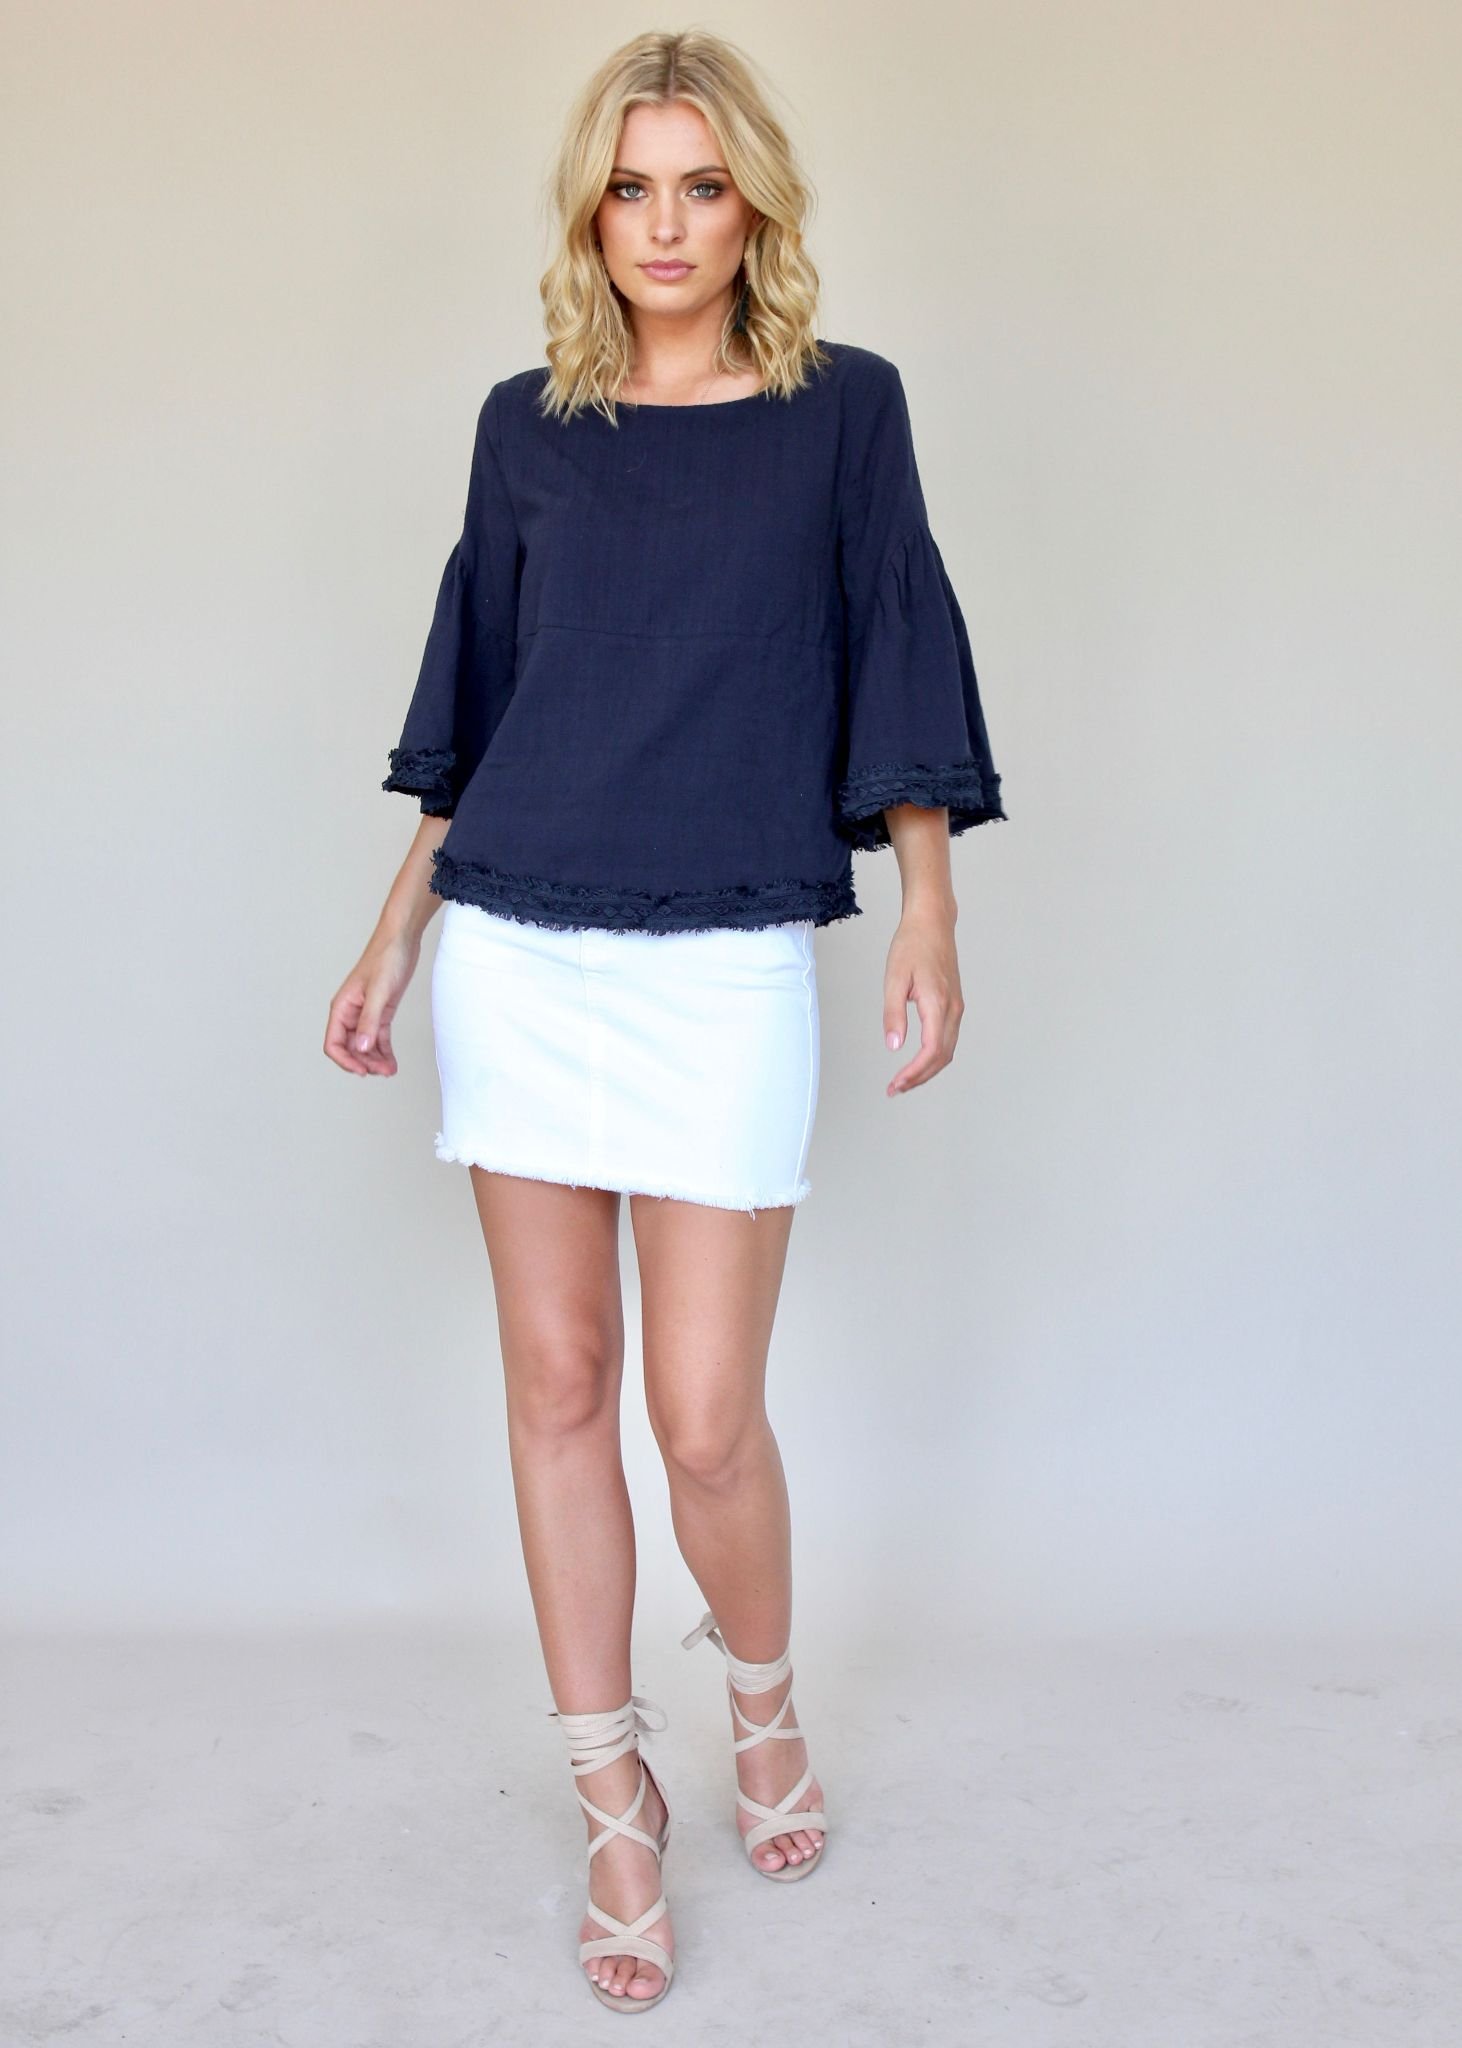 Mercy Me Blouse - Navy